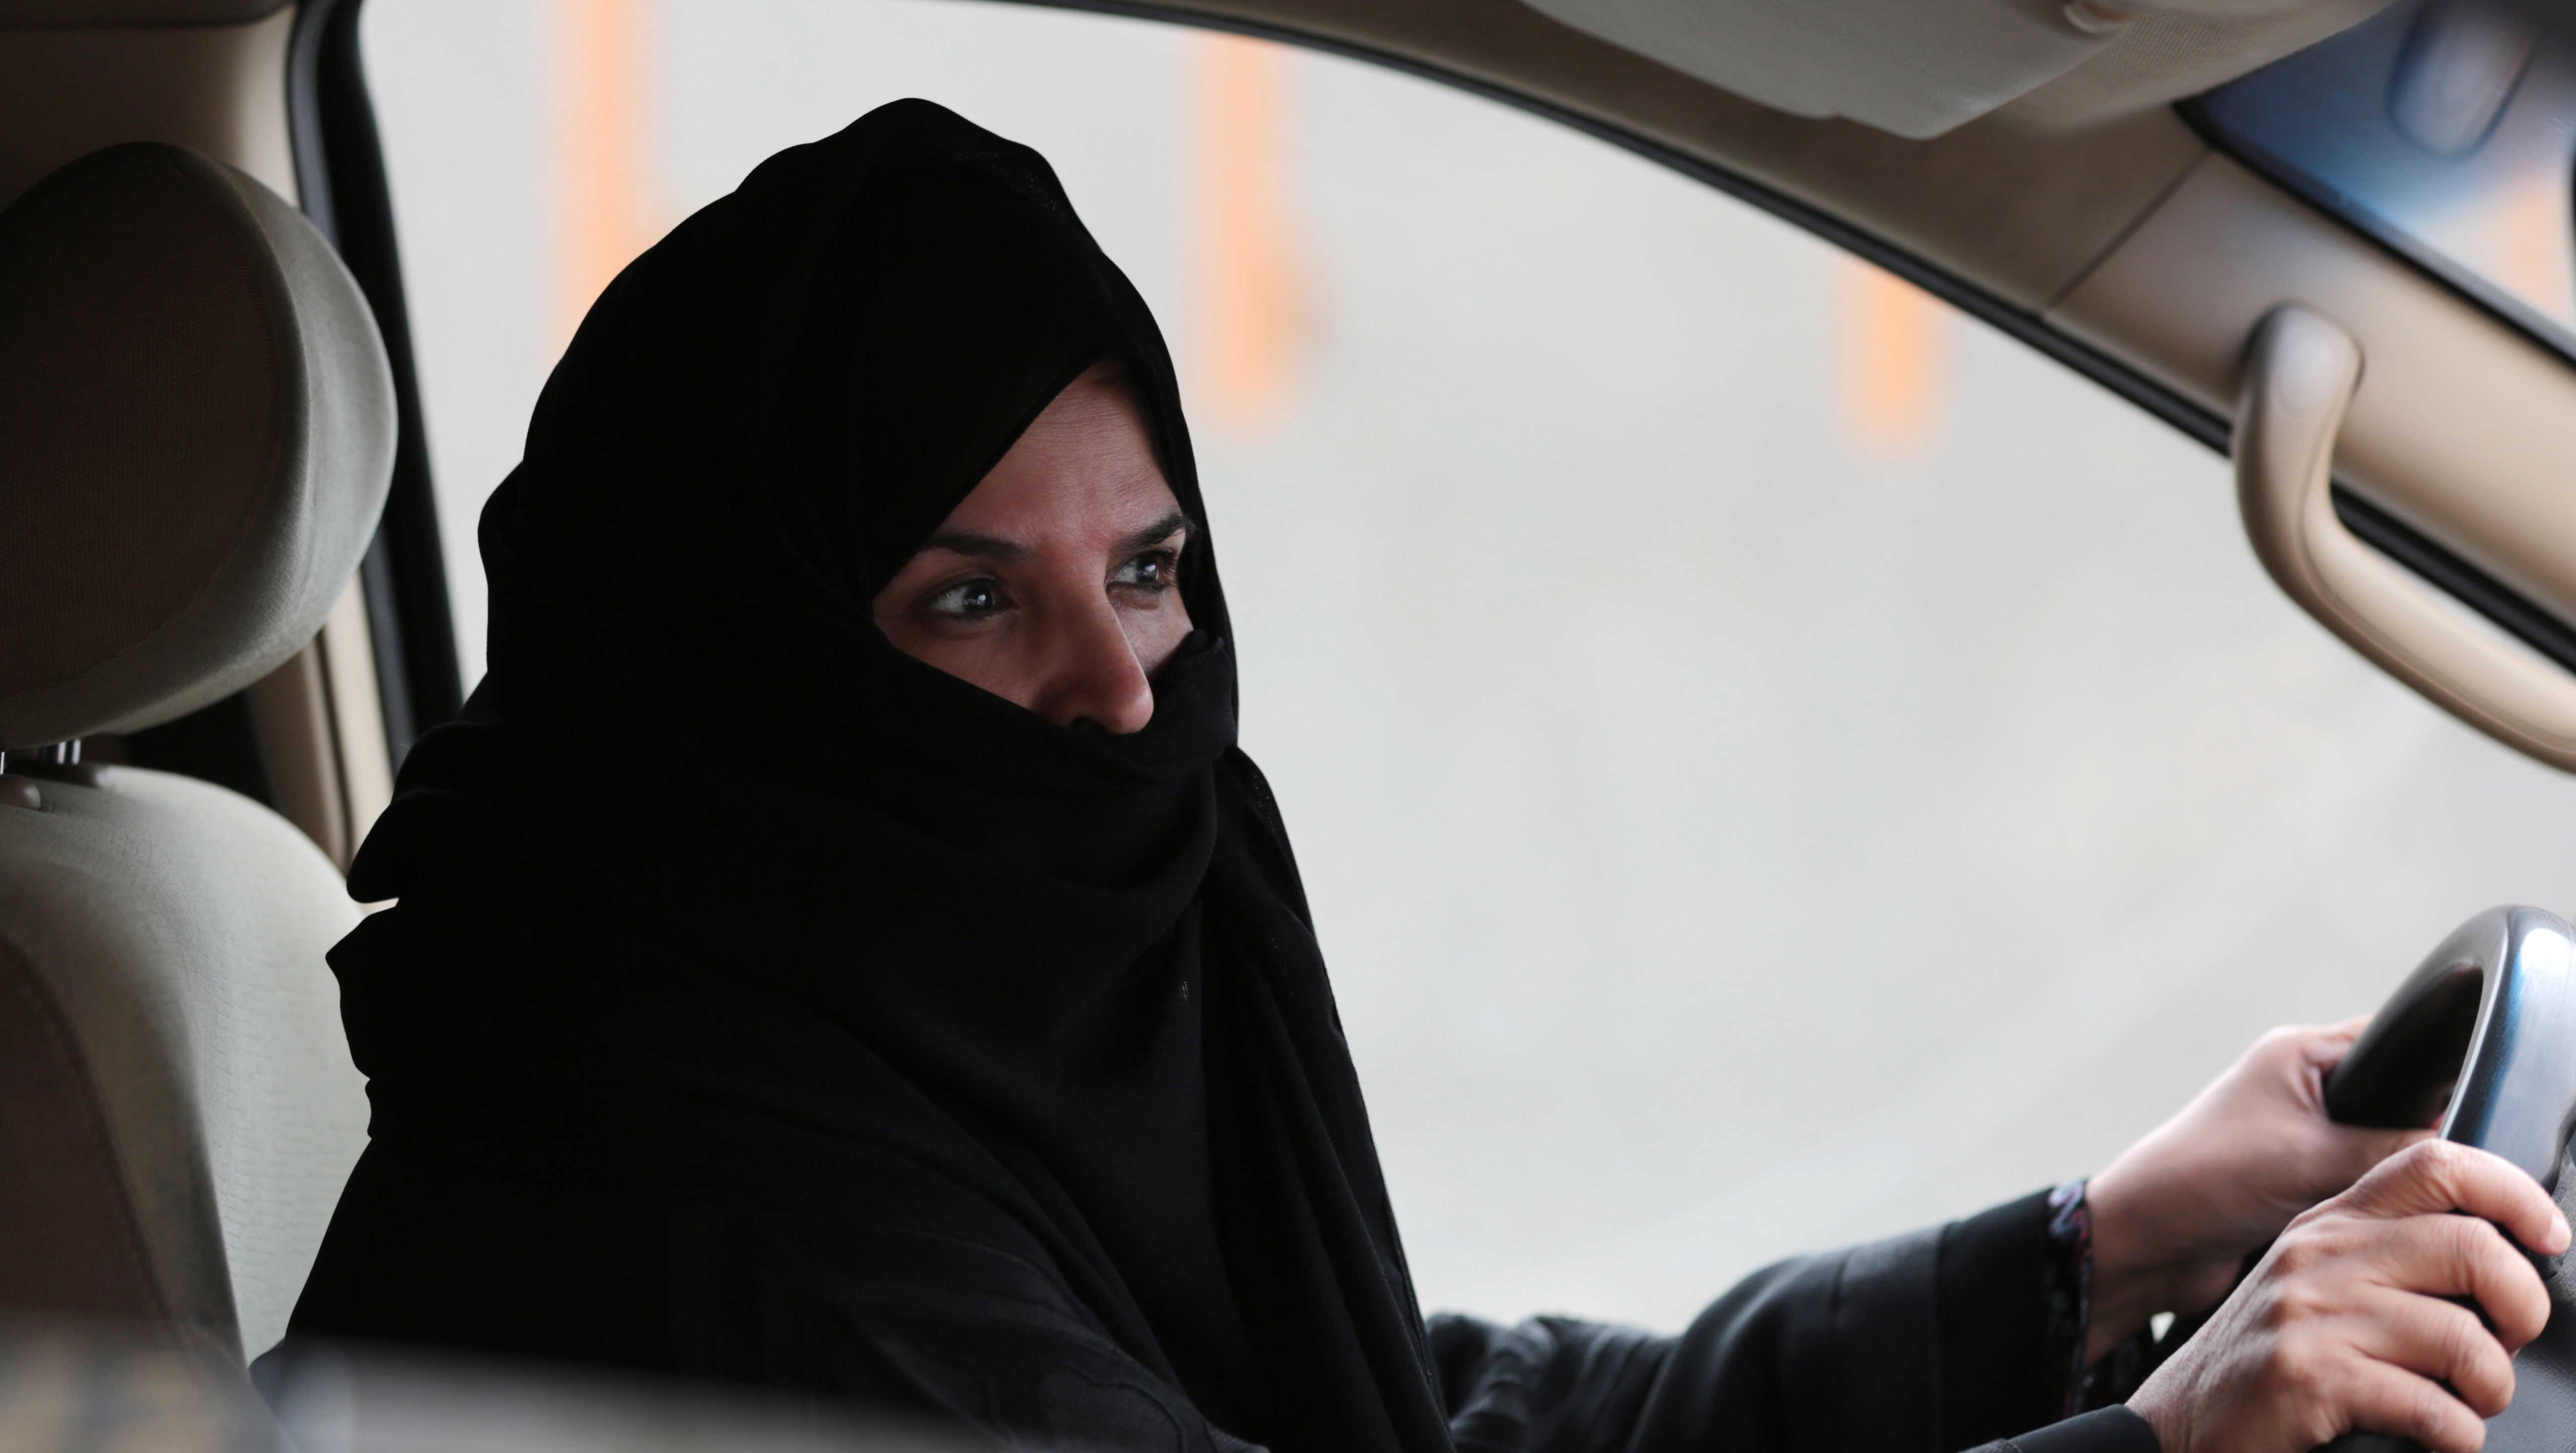 Aziza Yousef drives a car on a highway in Riyadh, Saudi Arabia, Saturday March 29, 2014, as part of a campaign to defy Saudi Arabia's ban on women driving.